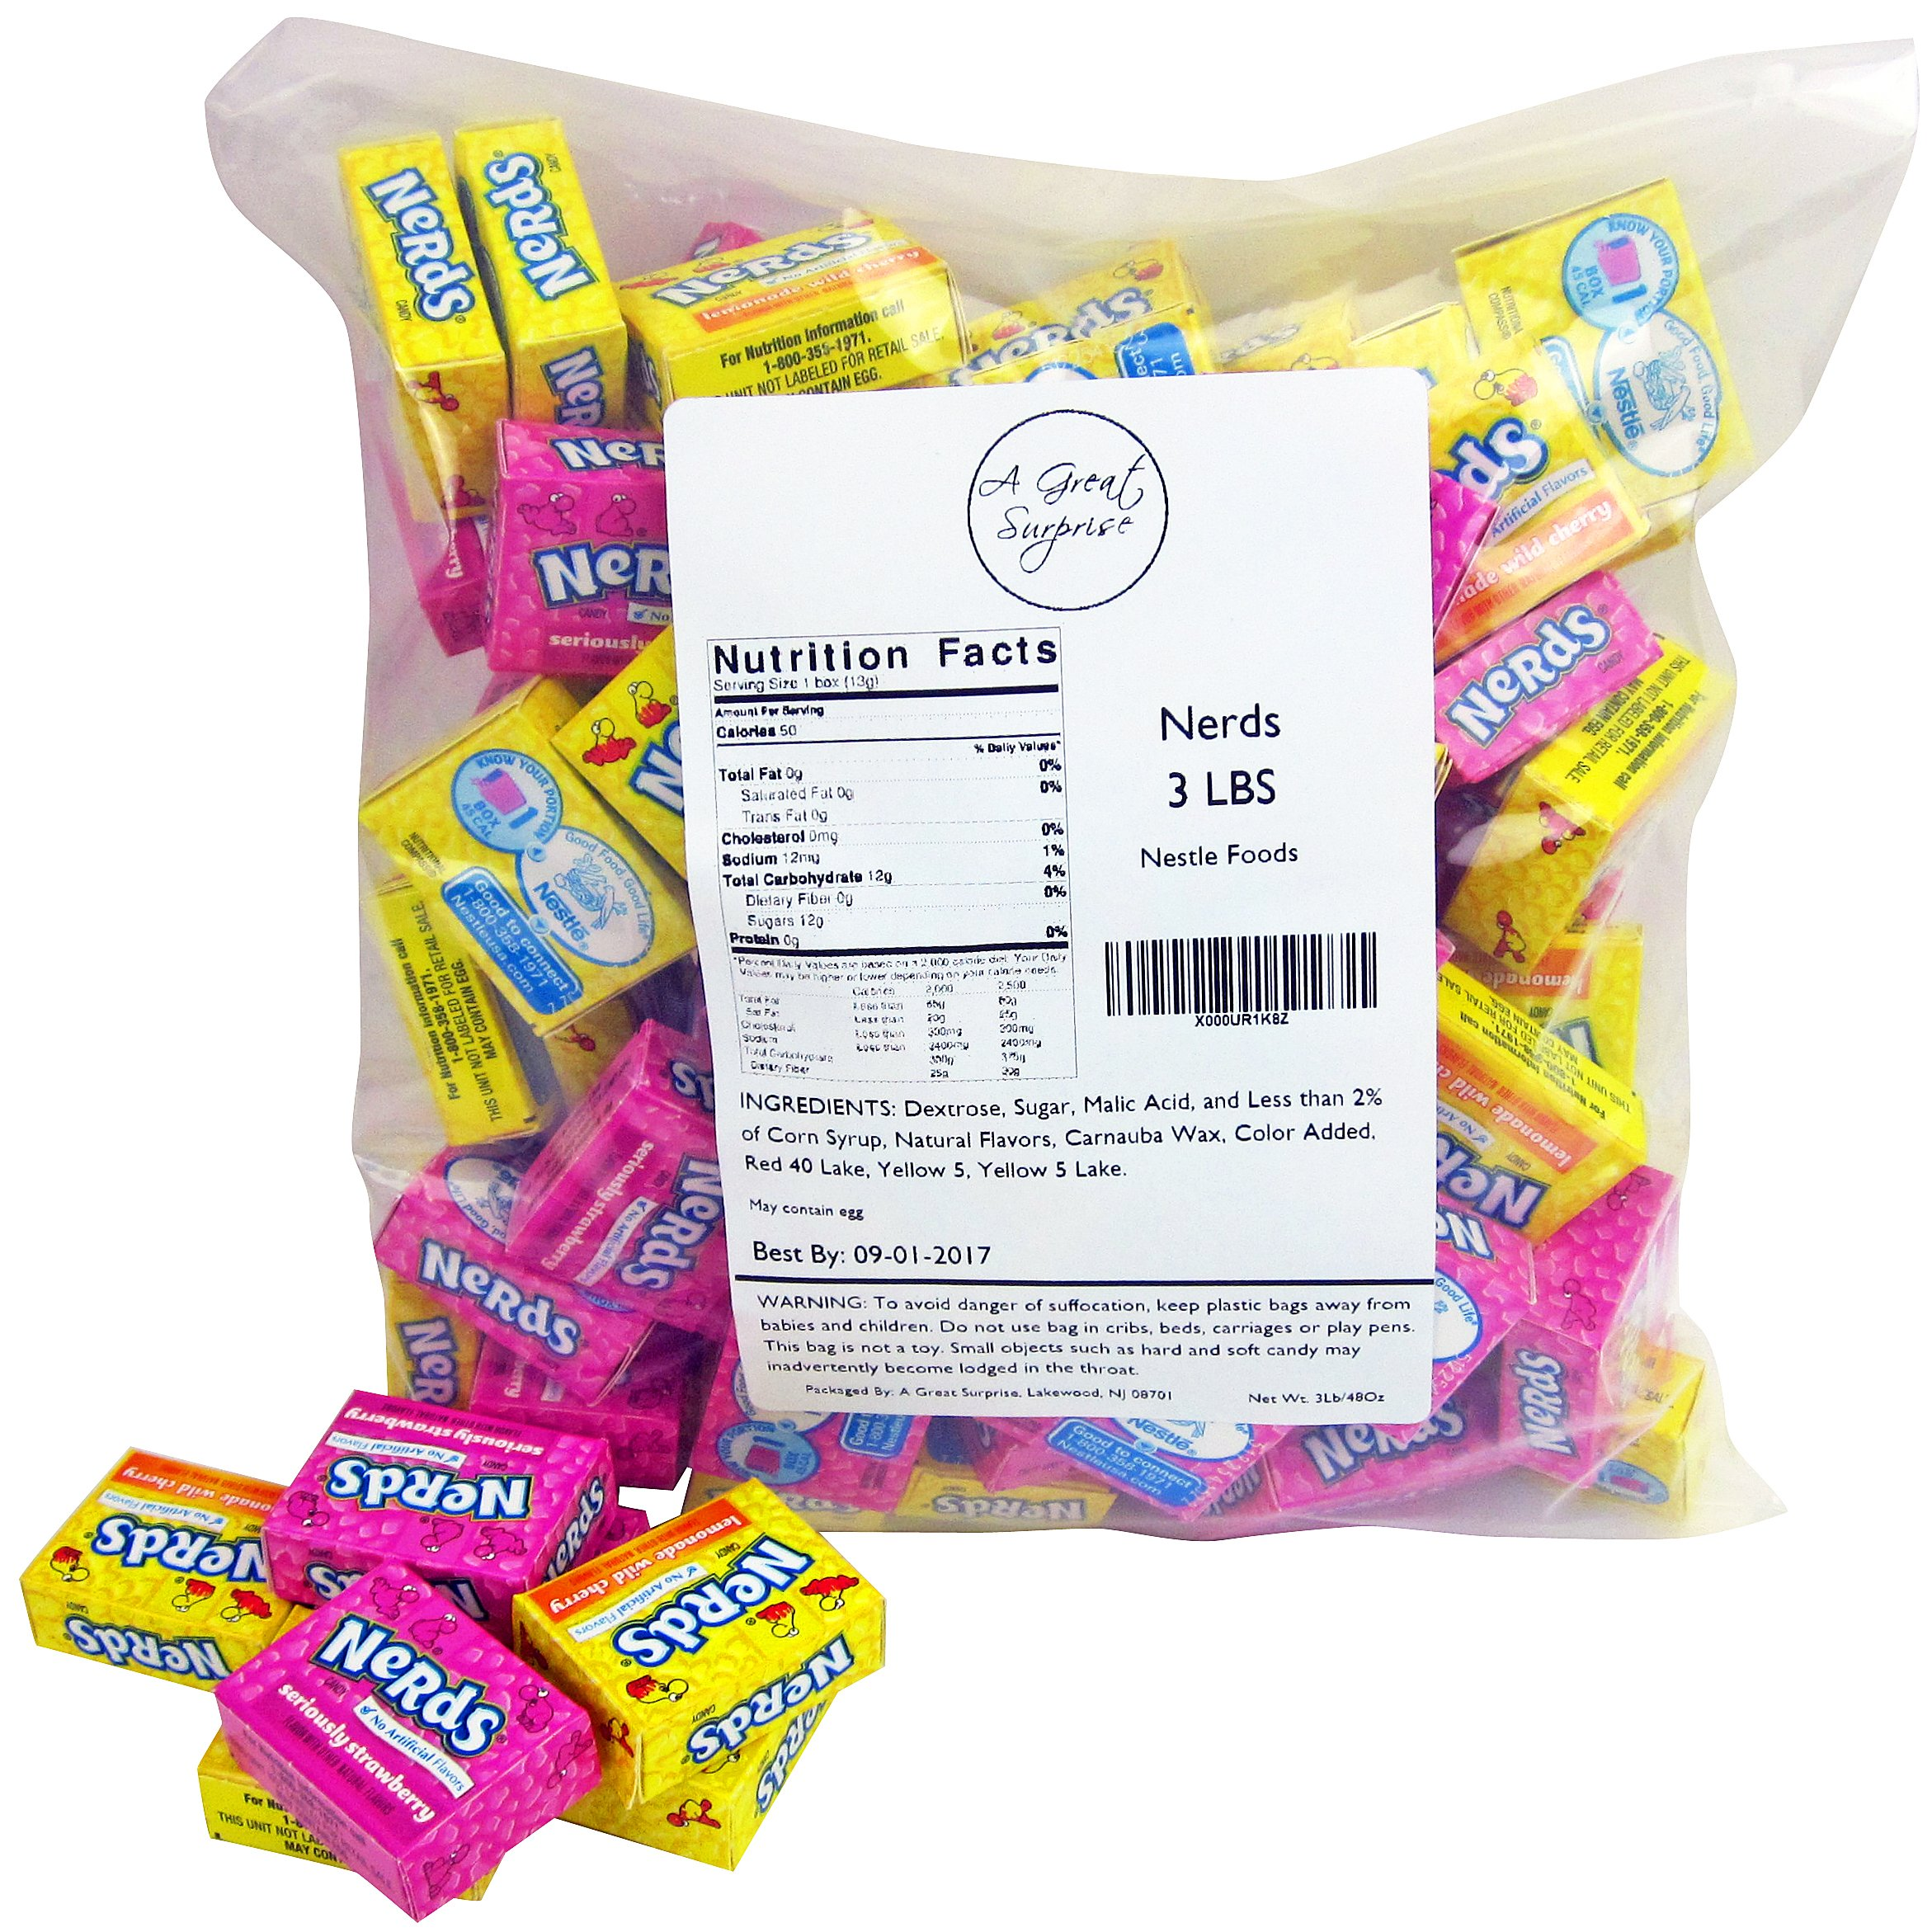 Nerds Candy - Wonka Nerds Mini Boxes, Strawberry and Lemonade Wild Cherry Assortment, 4 LB Box Bulk Candy (Approx. 100 Mini Boxes) by A Great Surprise (Image #2)